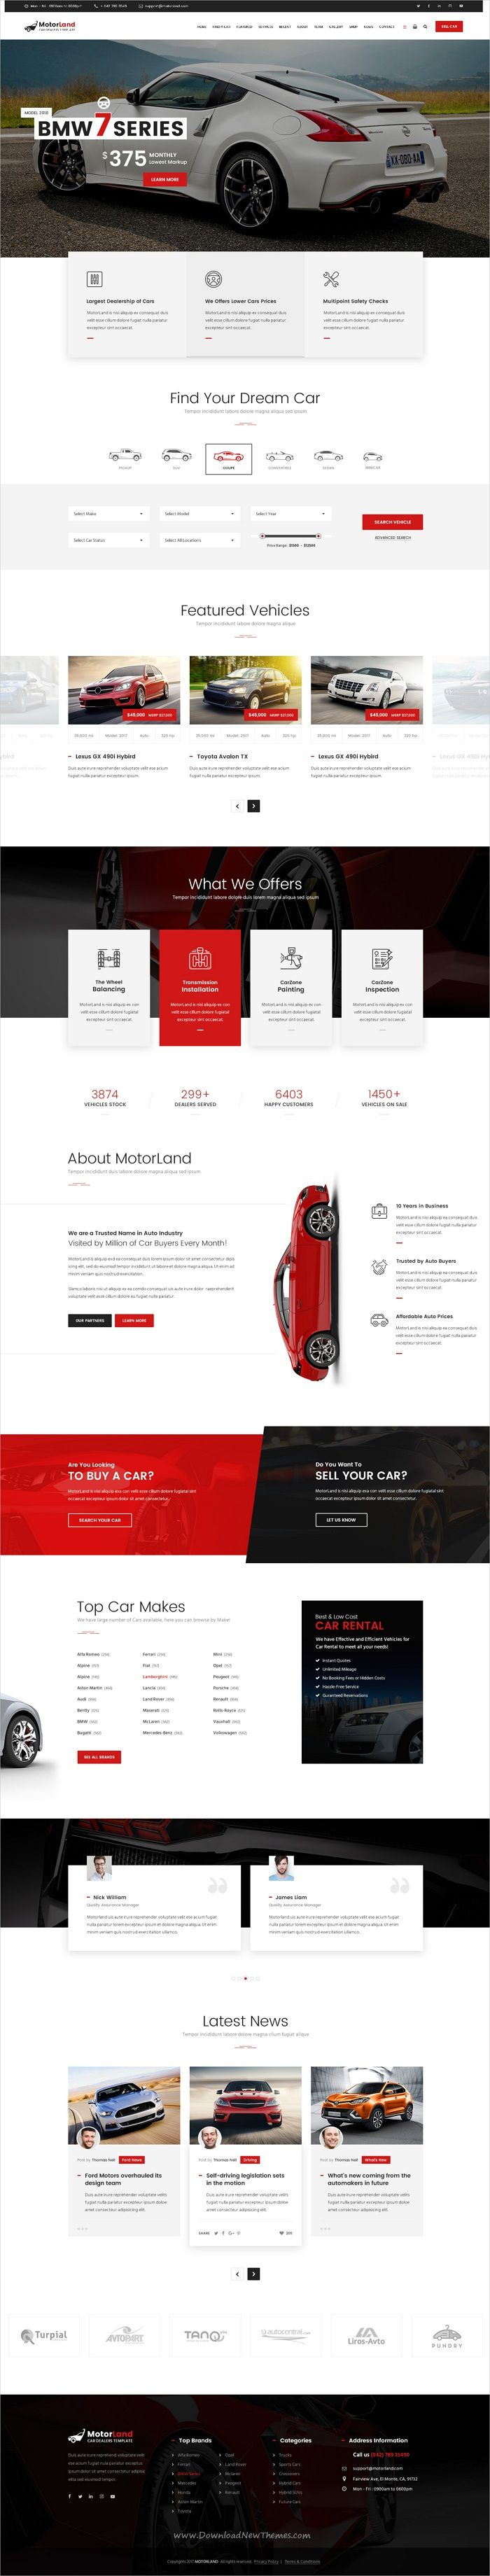 Motorland is clean and modern design #Photoshop template for car #dealer, renting, workshop and #auto accessories shop website download now..